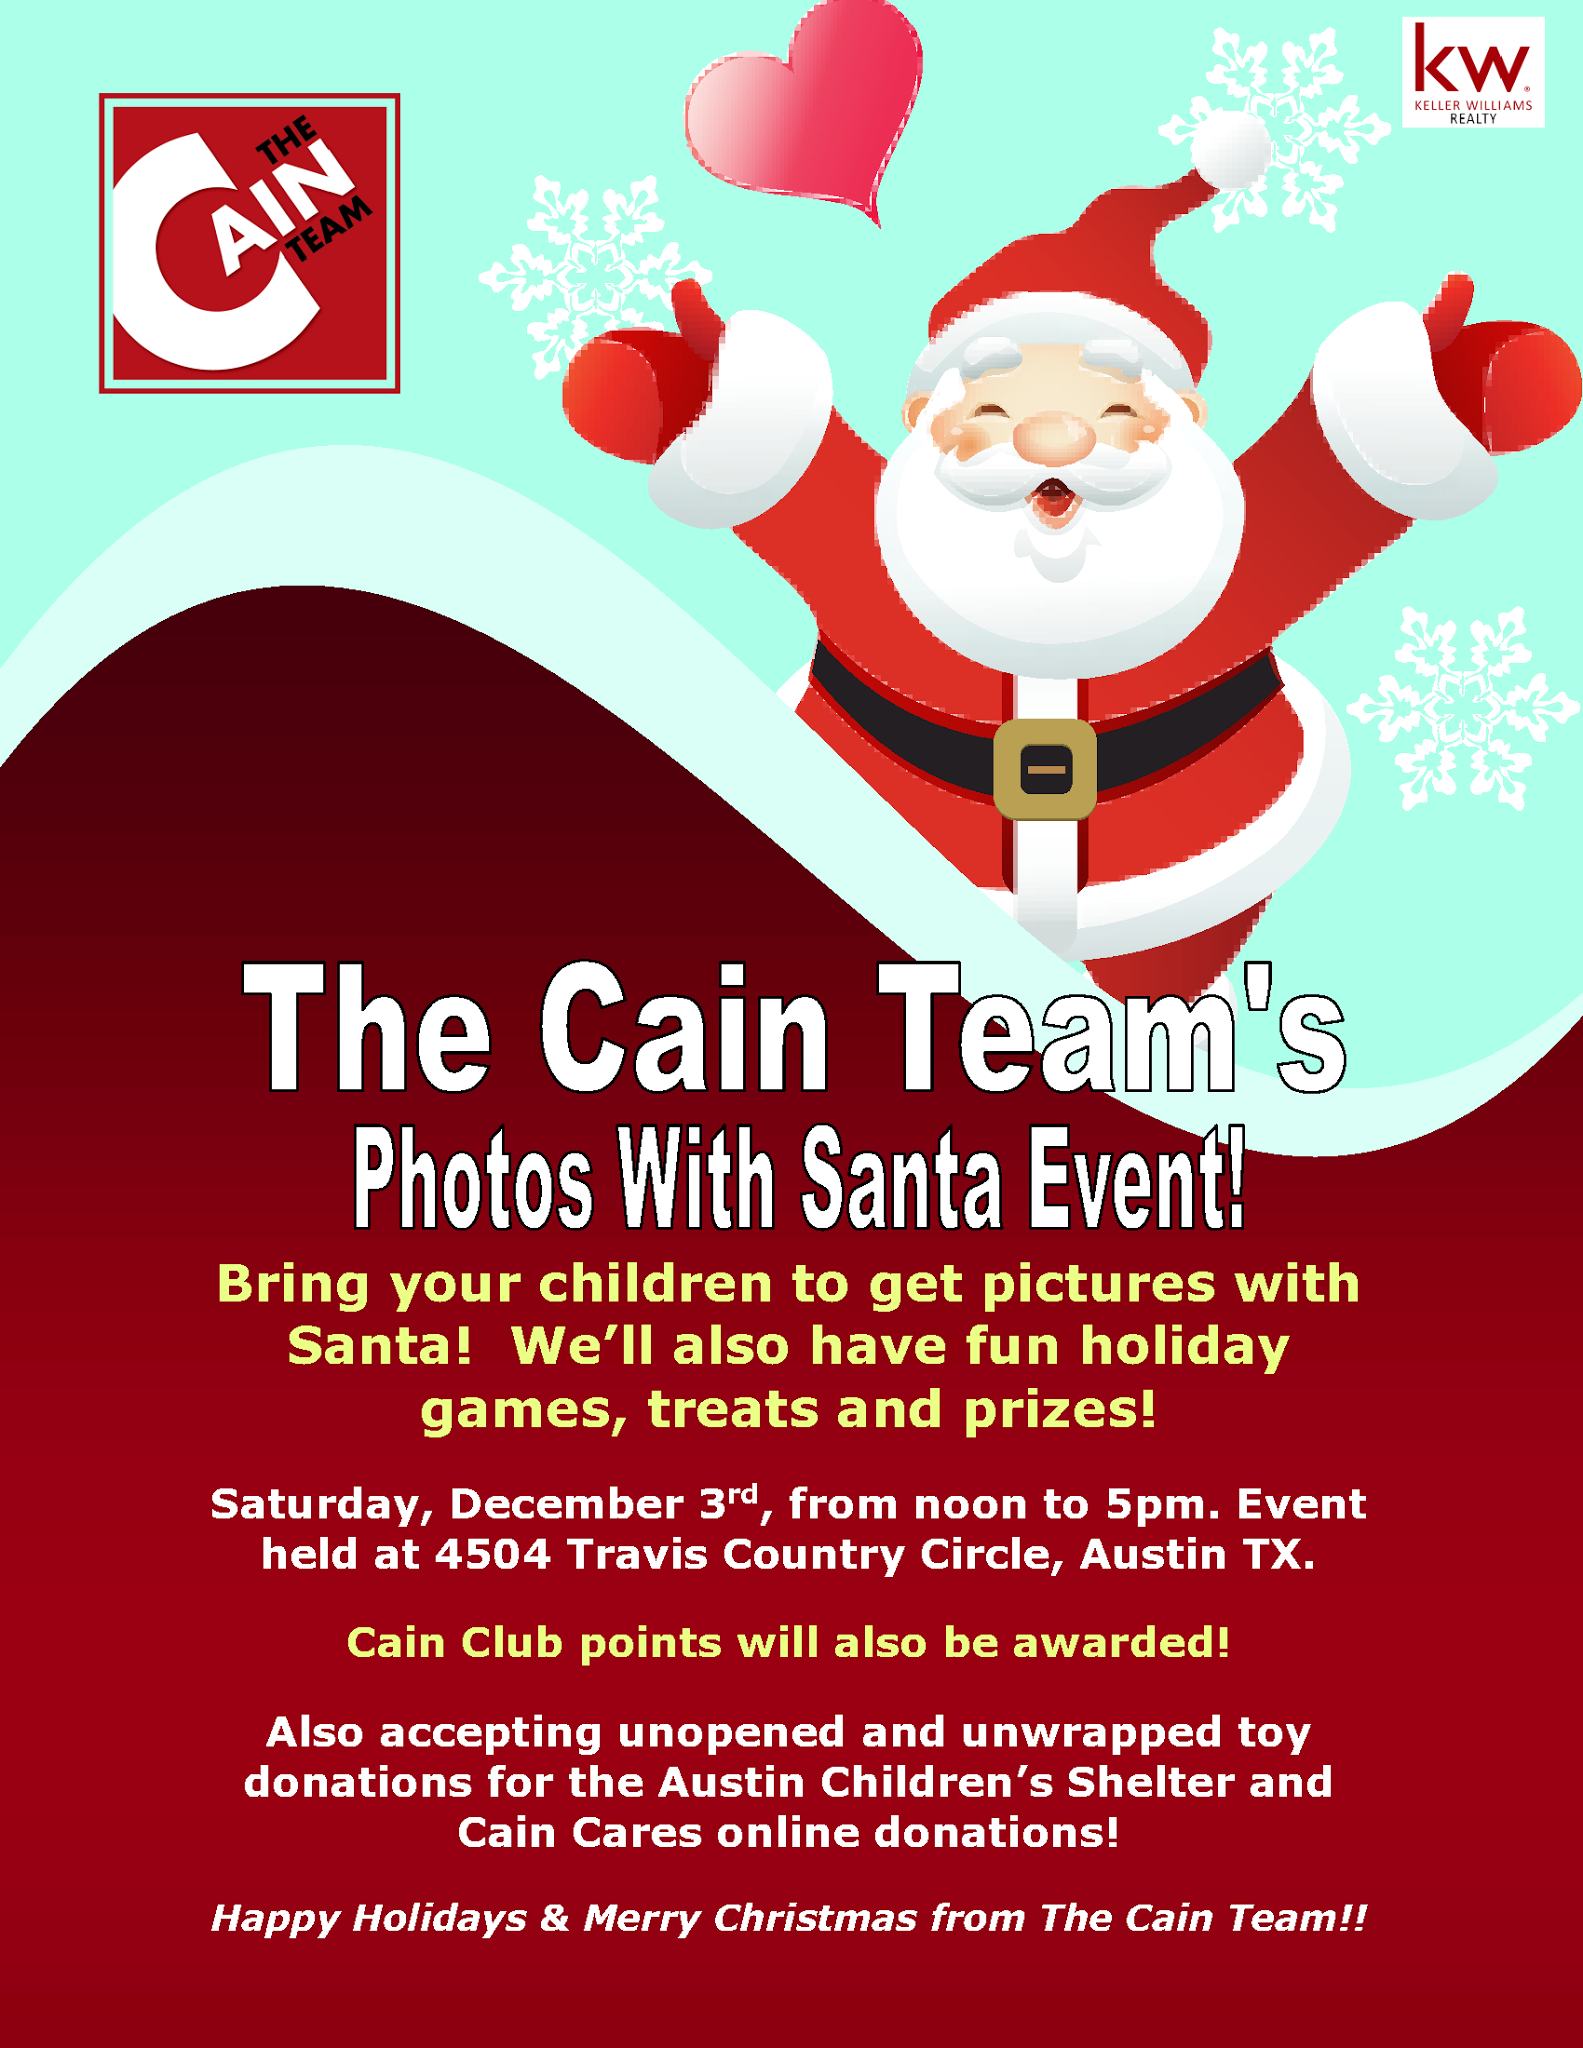 Cain Realty Group Photos with Santa Event